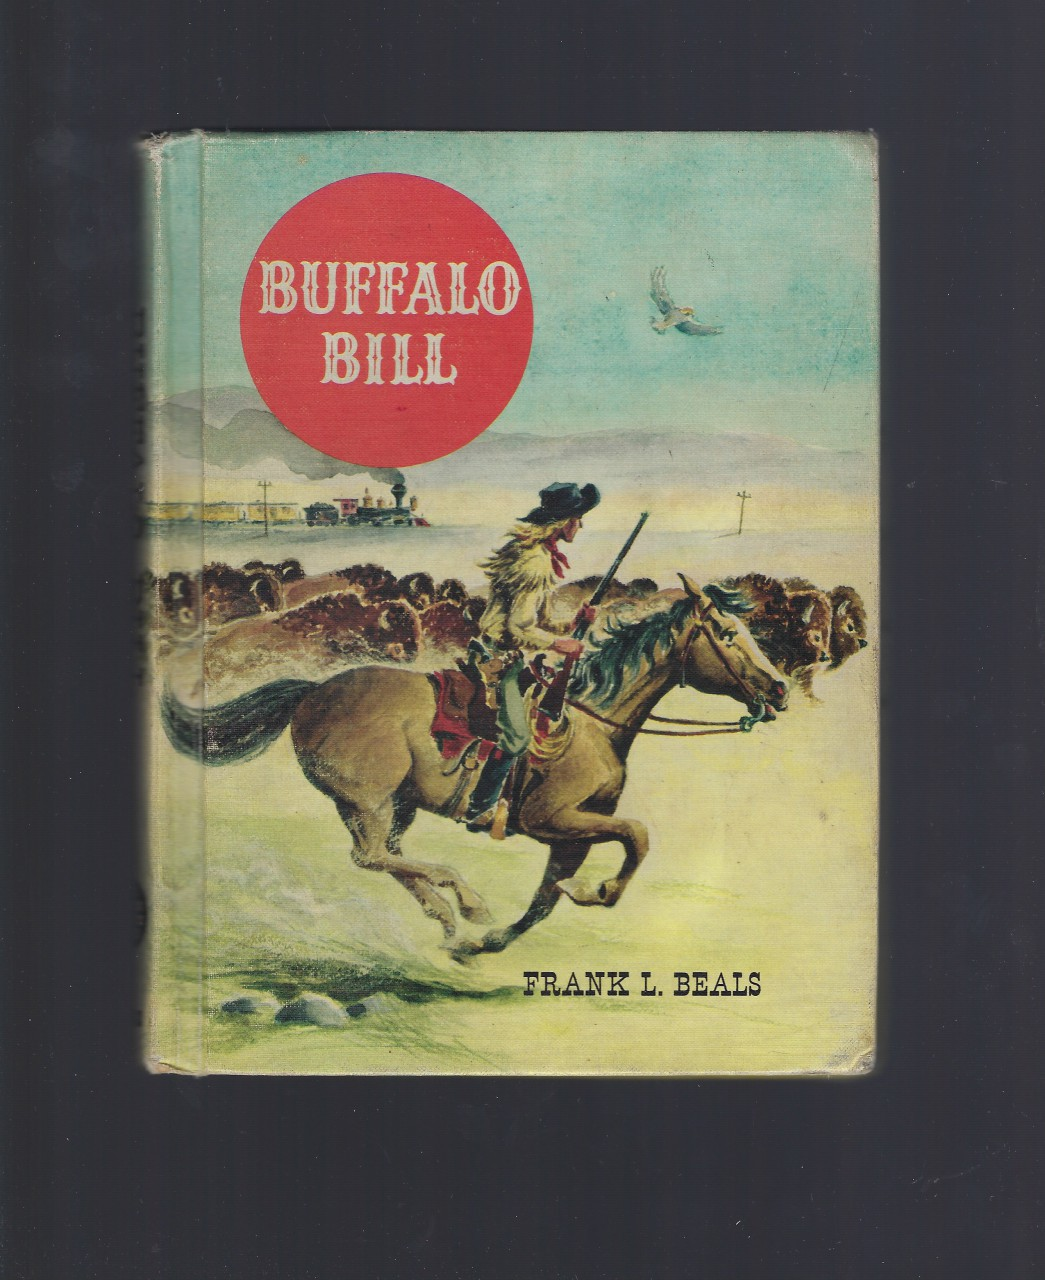 Buffalo Bill American Adventure Series 1959, Cody, William F.